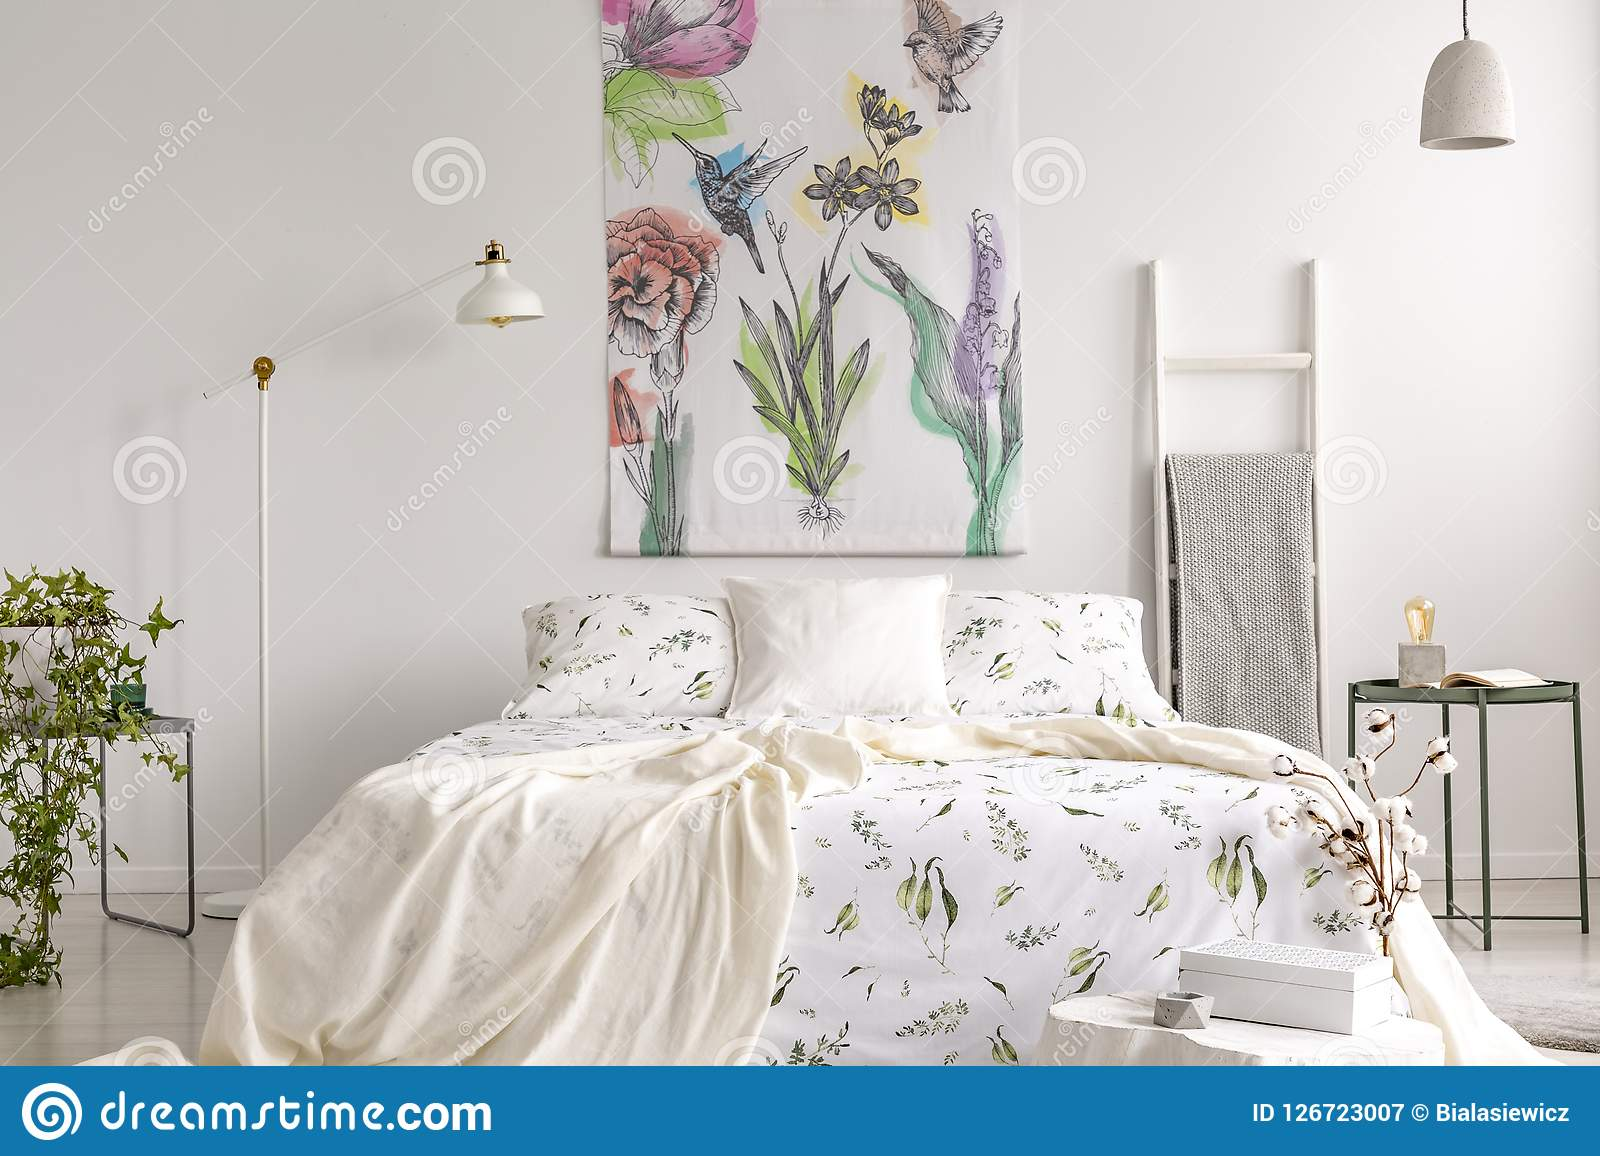 Wall Art Of Flowers And Birds Painted On A Fabric Above A Bed Which Is Dressed In Green Plants Pattern On White Bedding In A Fresh Stock Image Image Of Birds